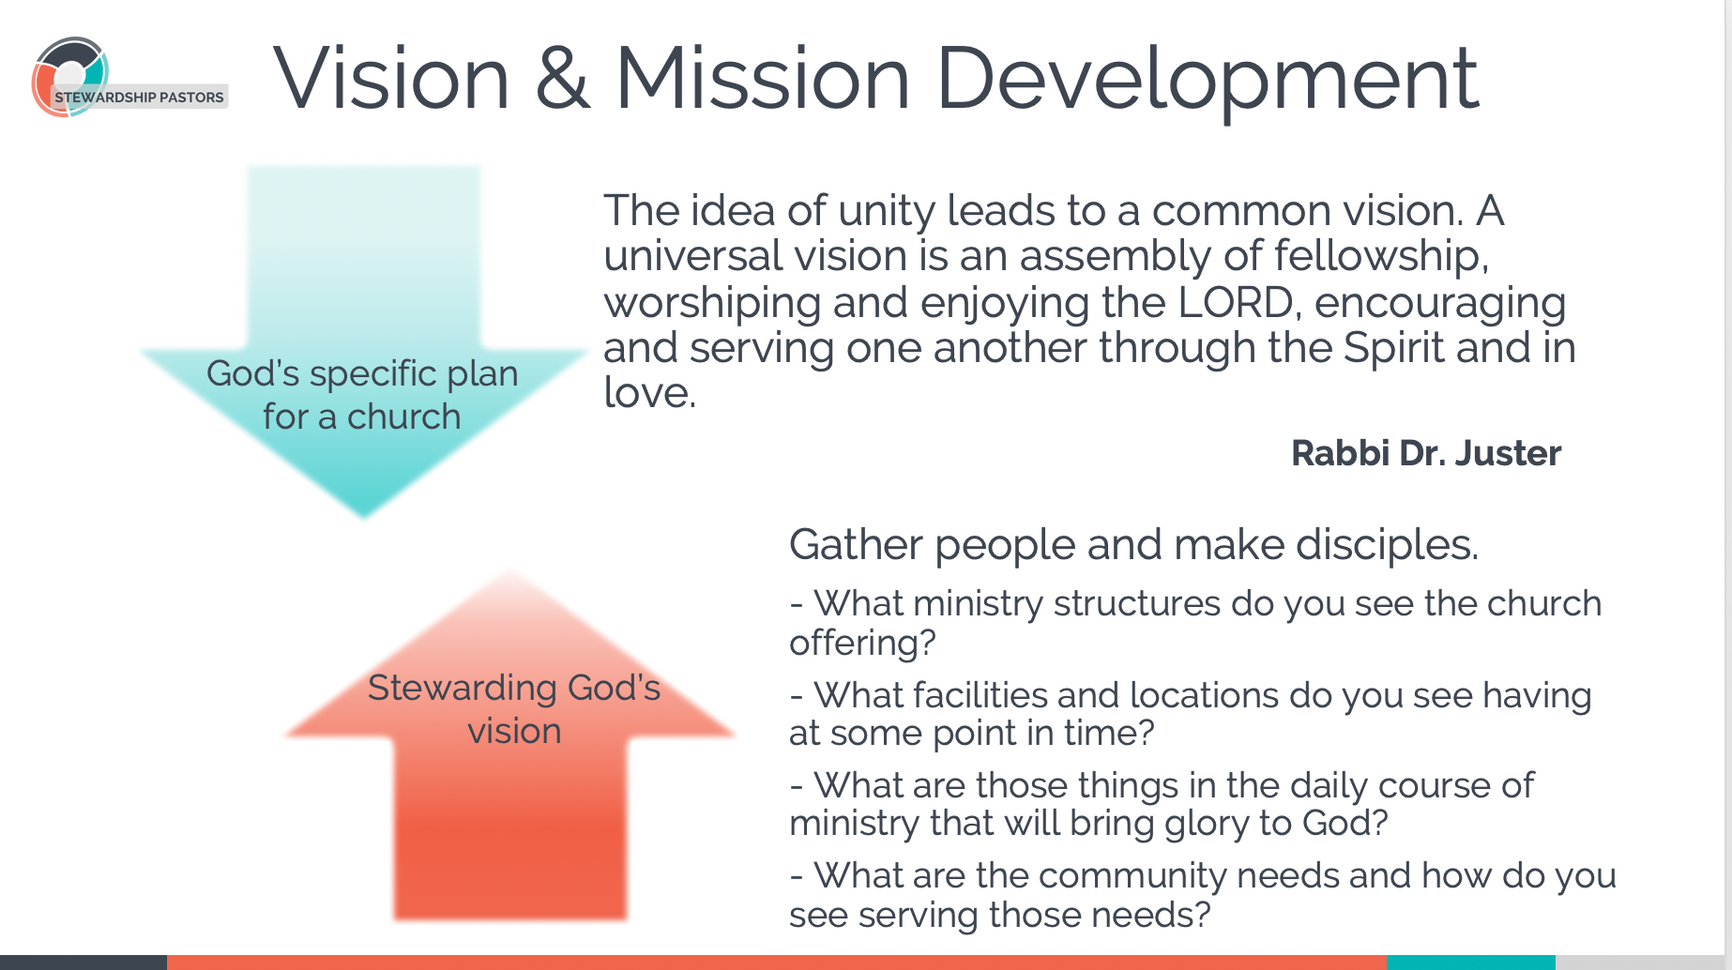 Vision & Mission Development